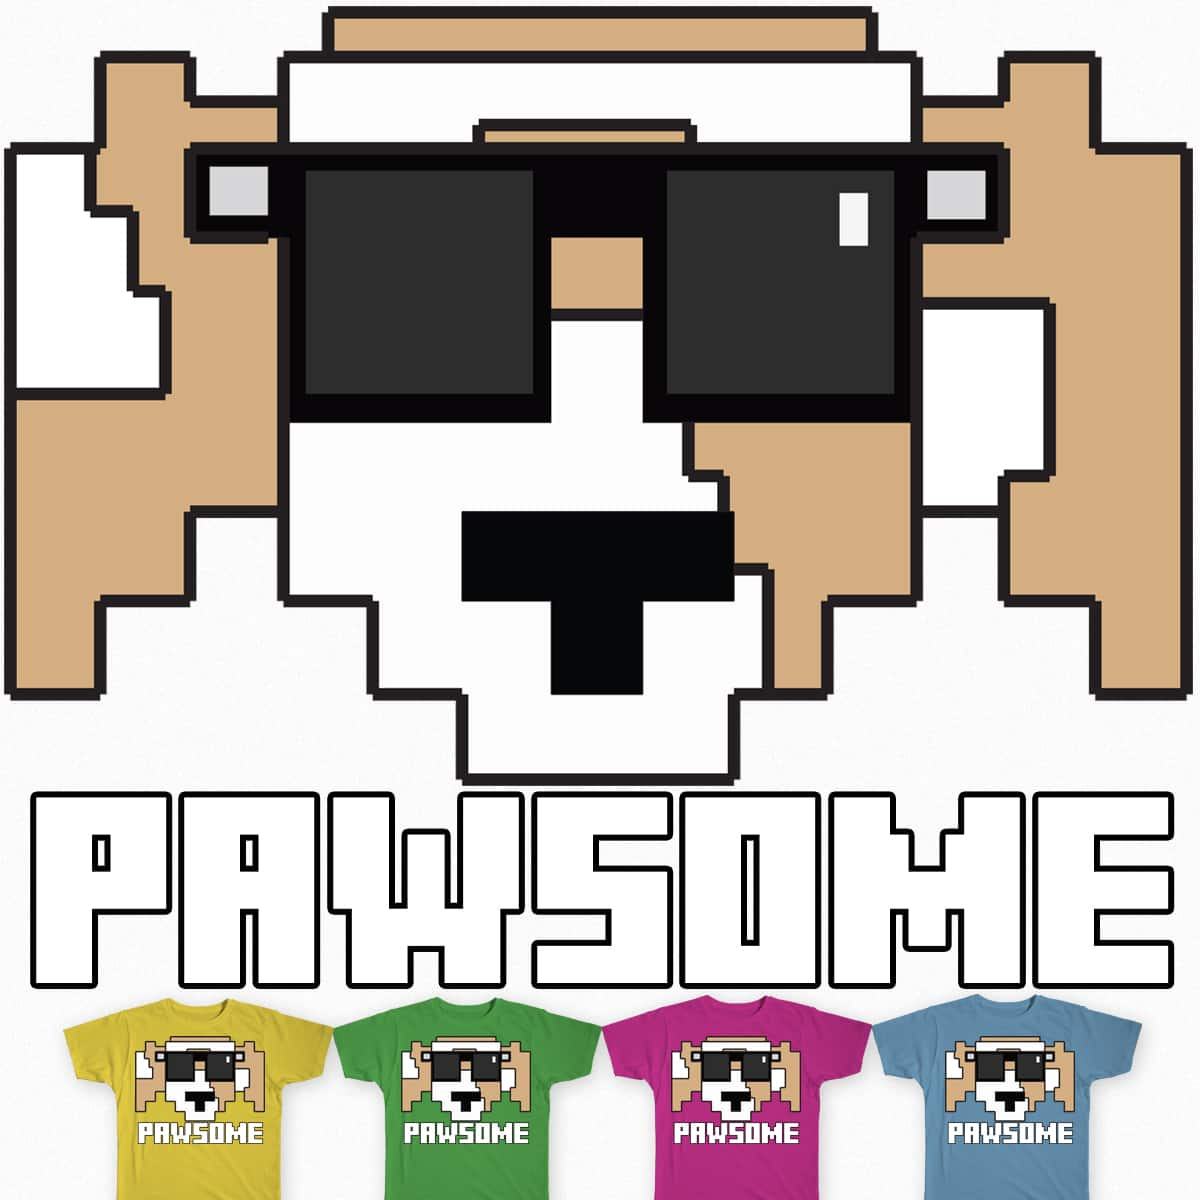 PAWSOME by QualityPirate on Threadless